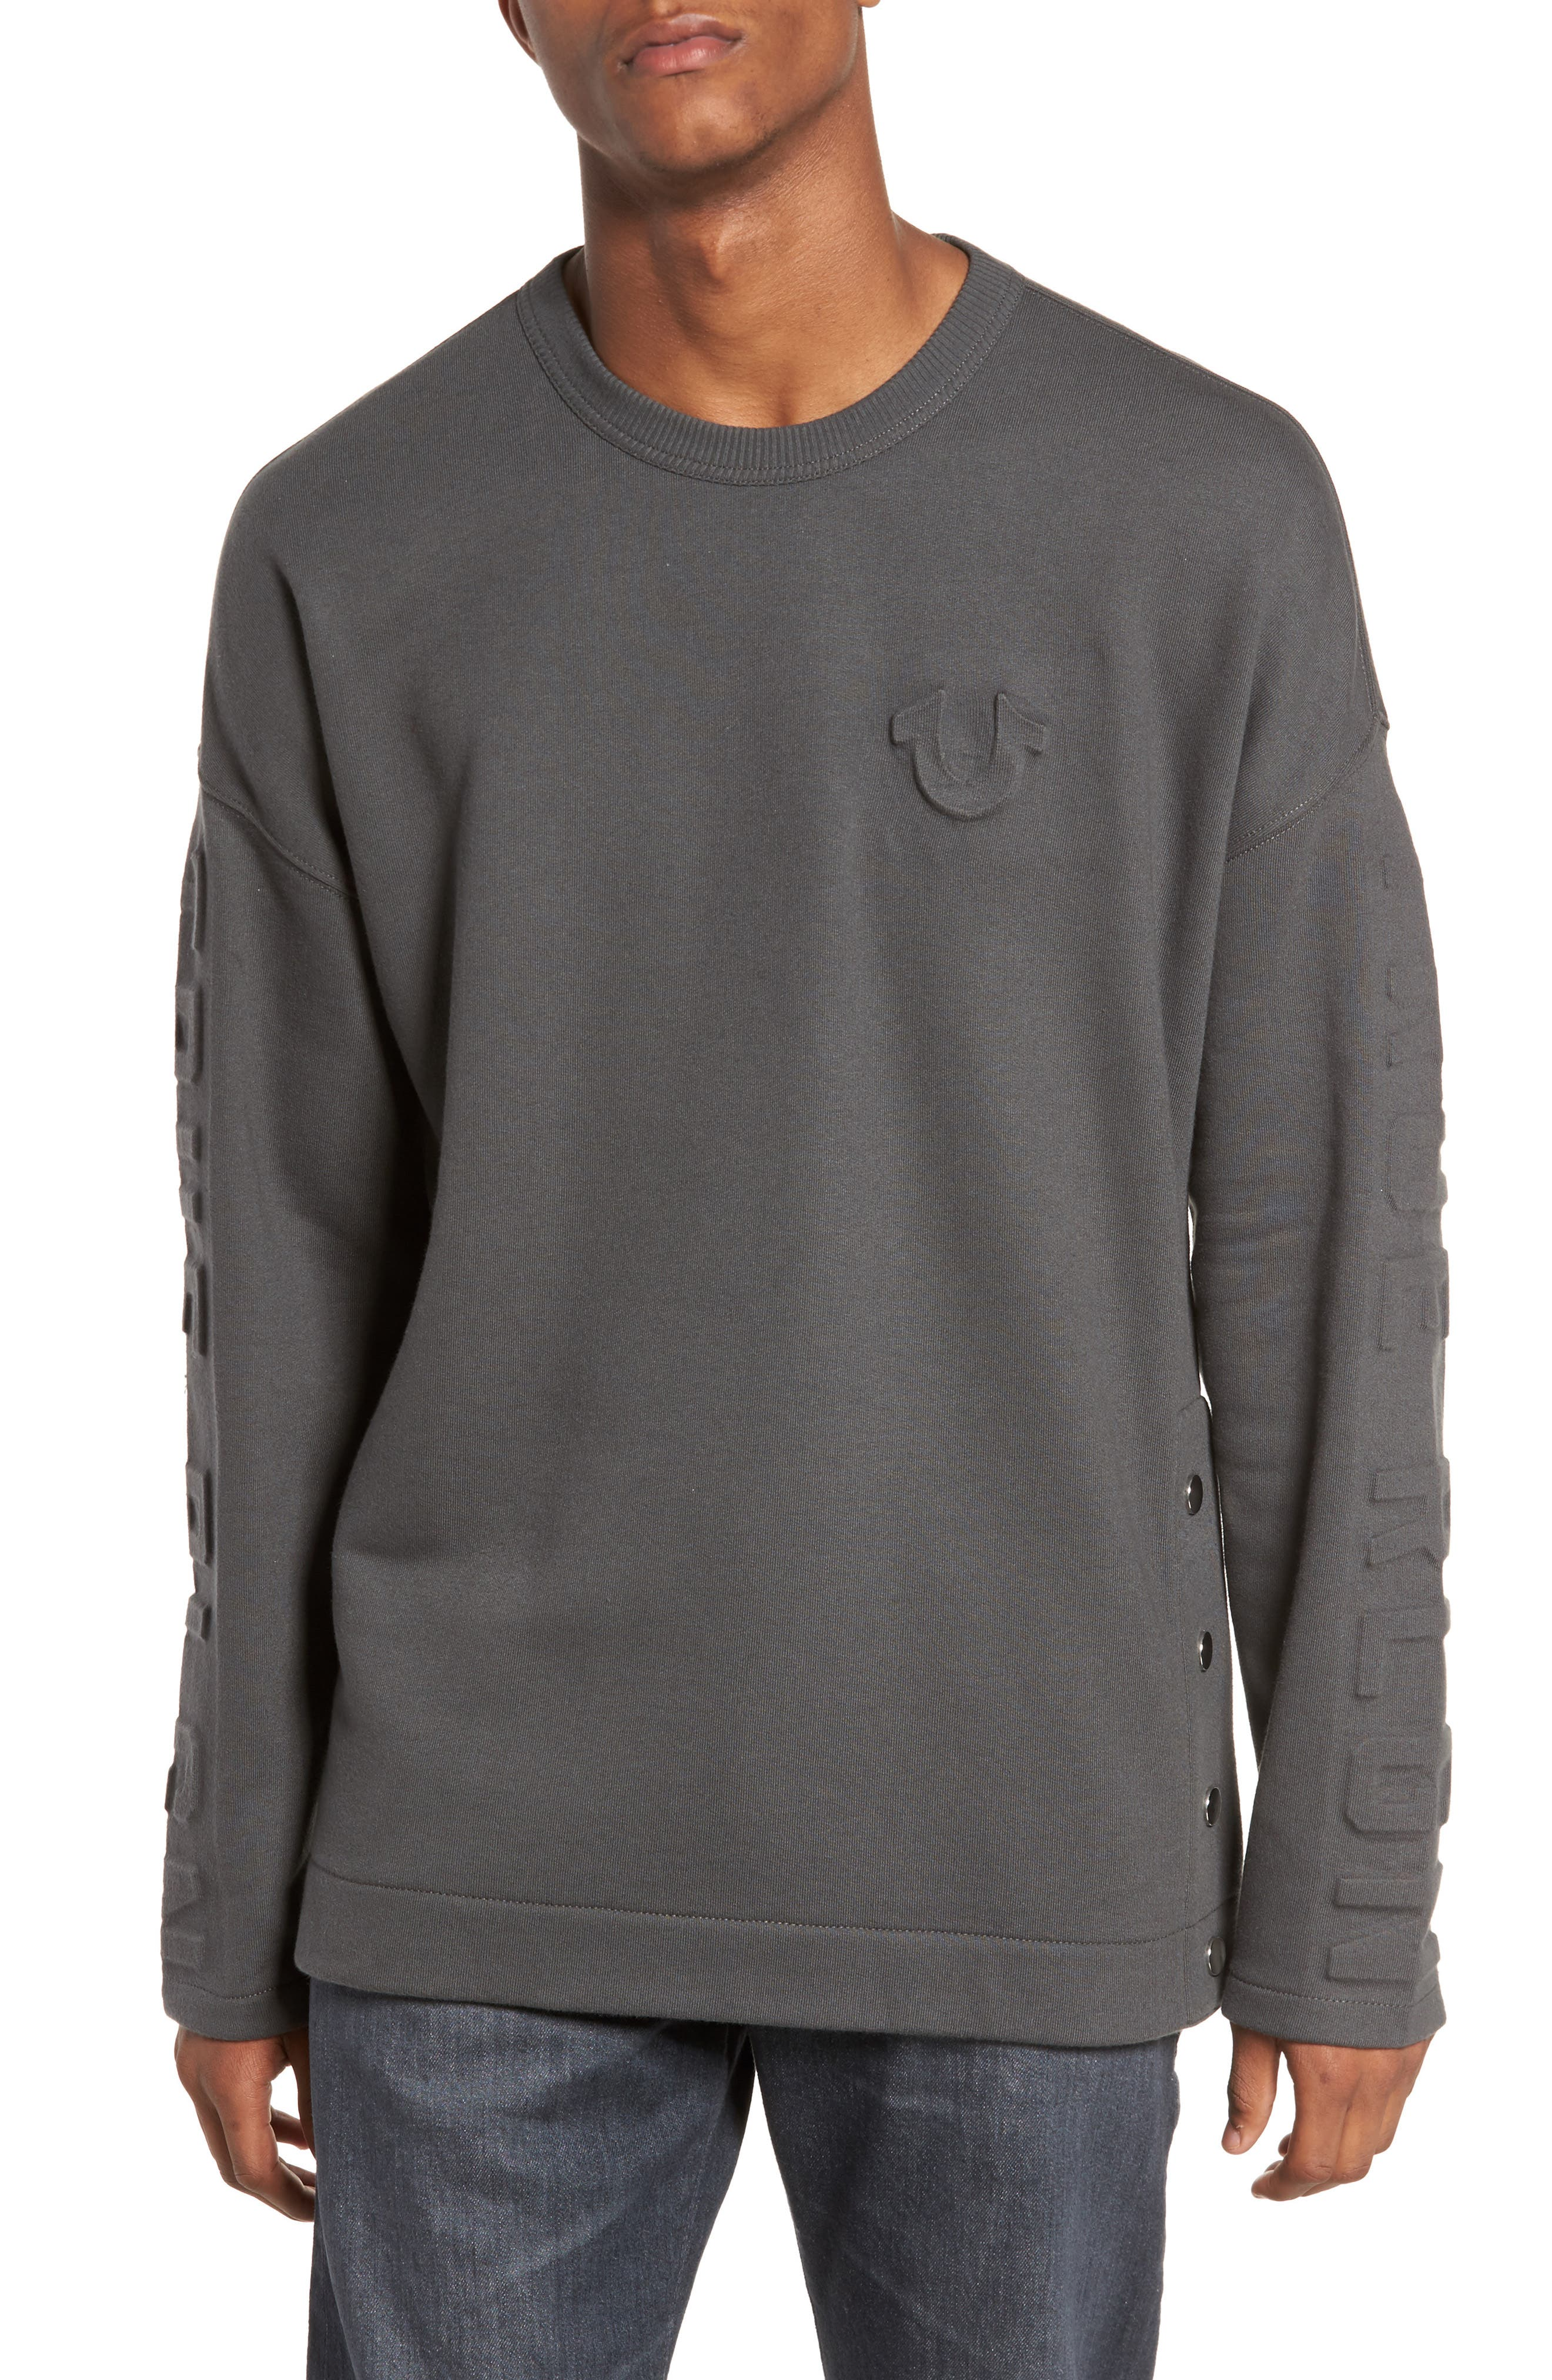 Main Image - True Religion Brand Jeans Oversize Fleece Sweatshirt